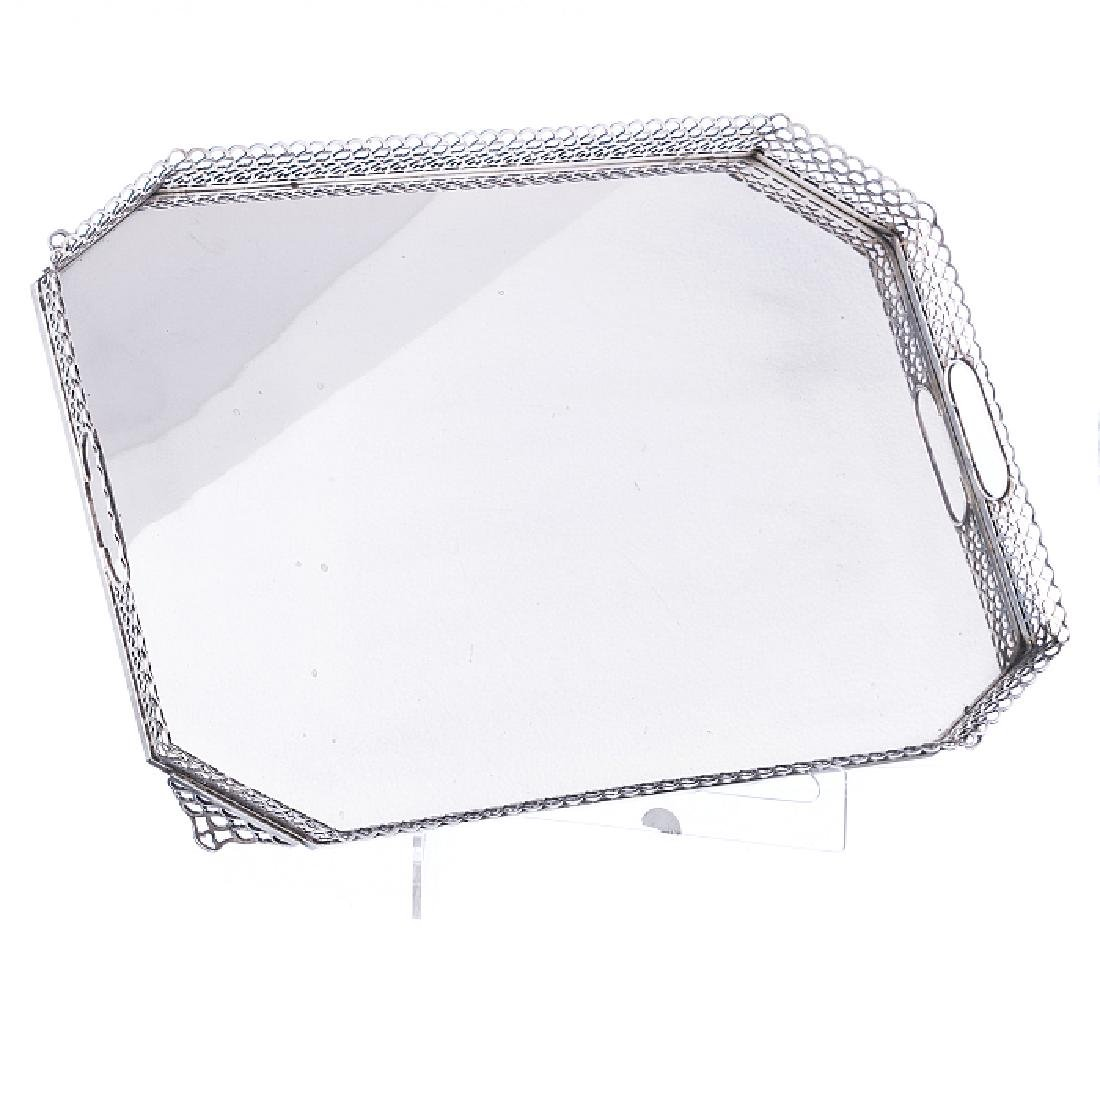 Eight-sided tray with a pierced gallery, in silver